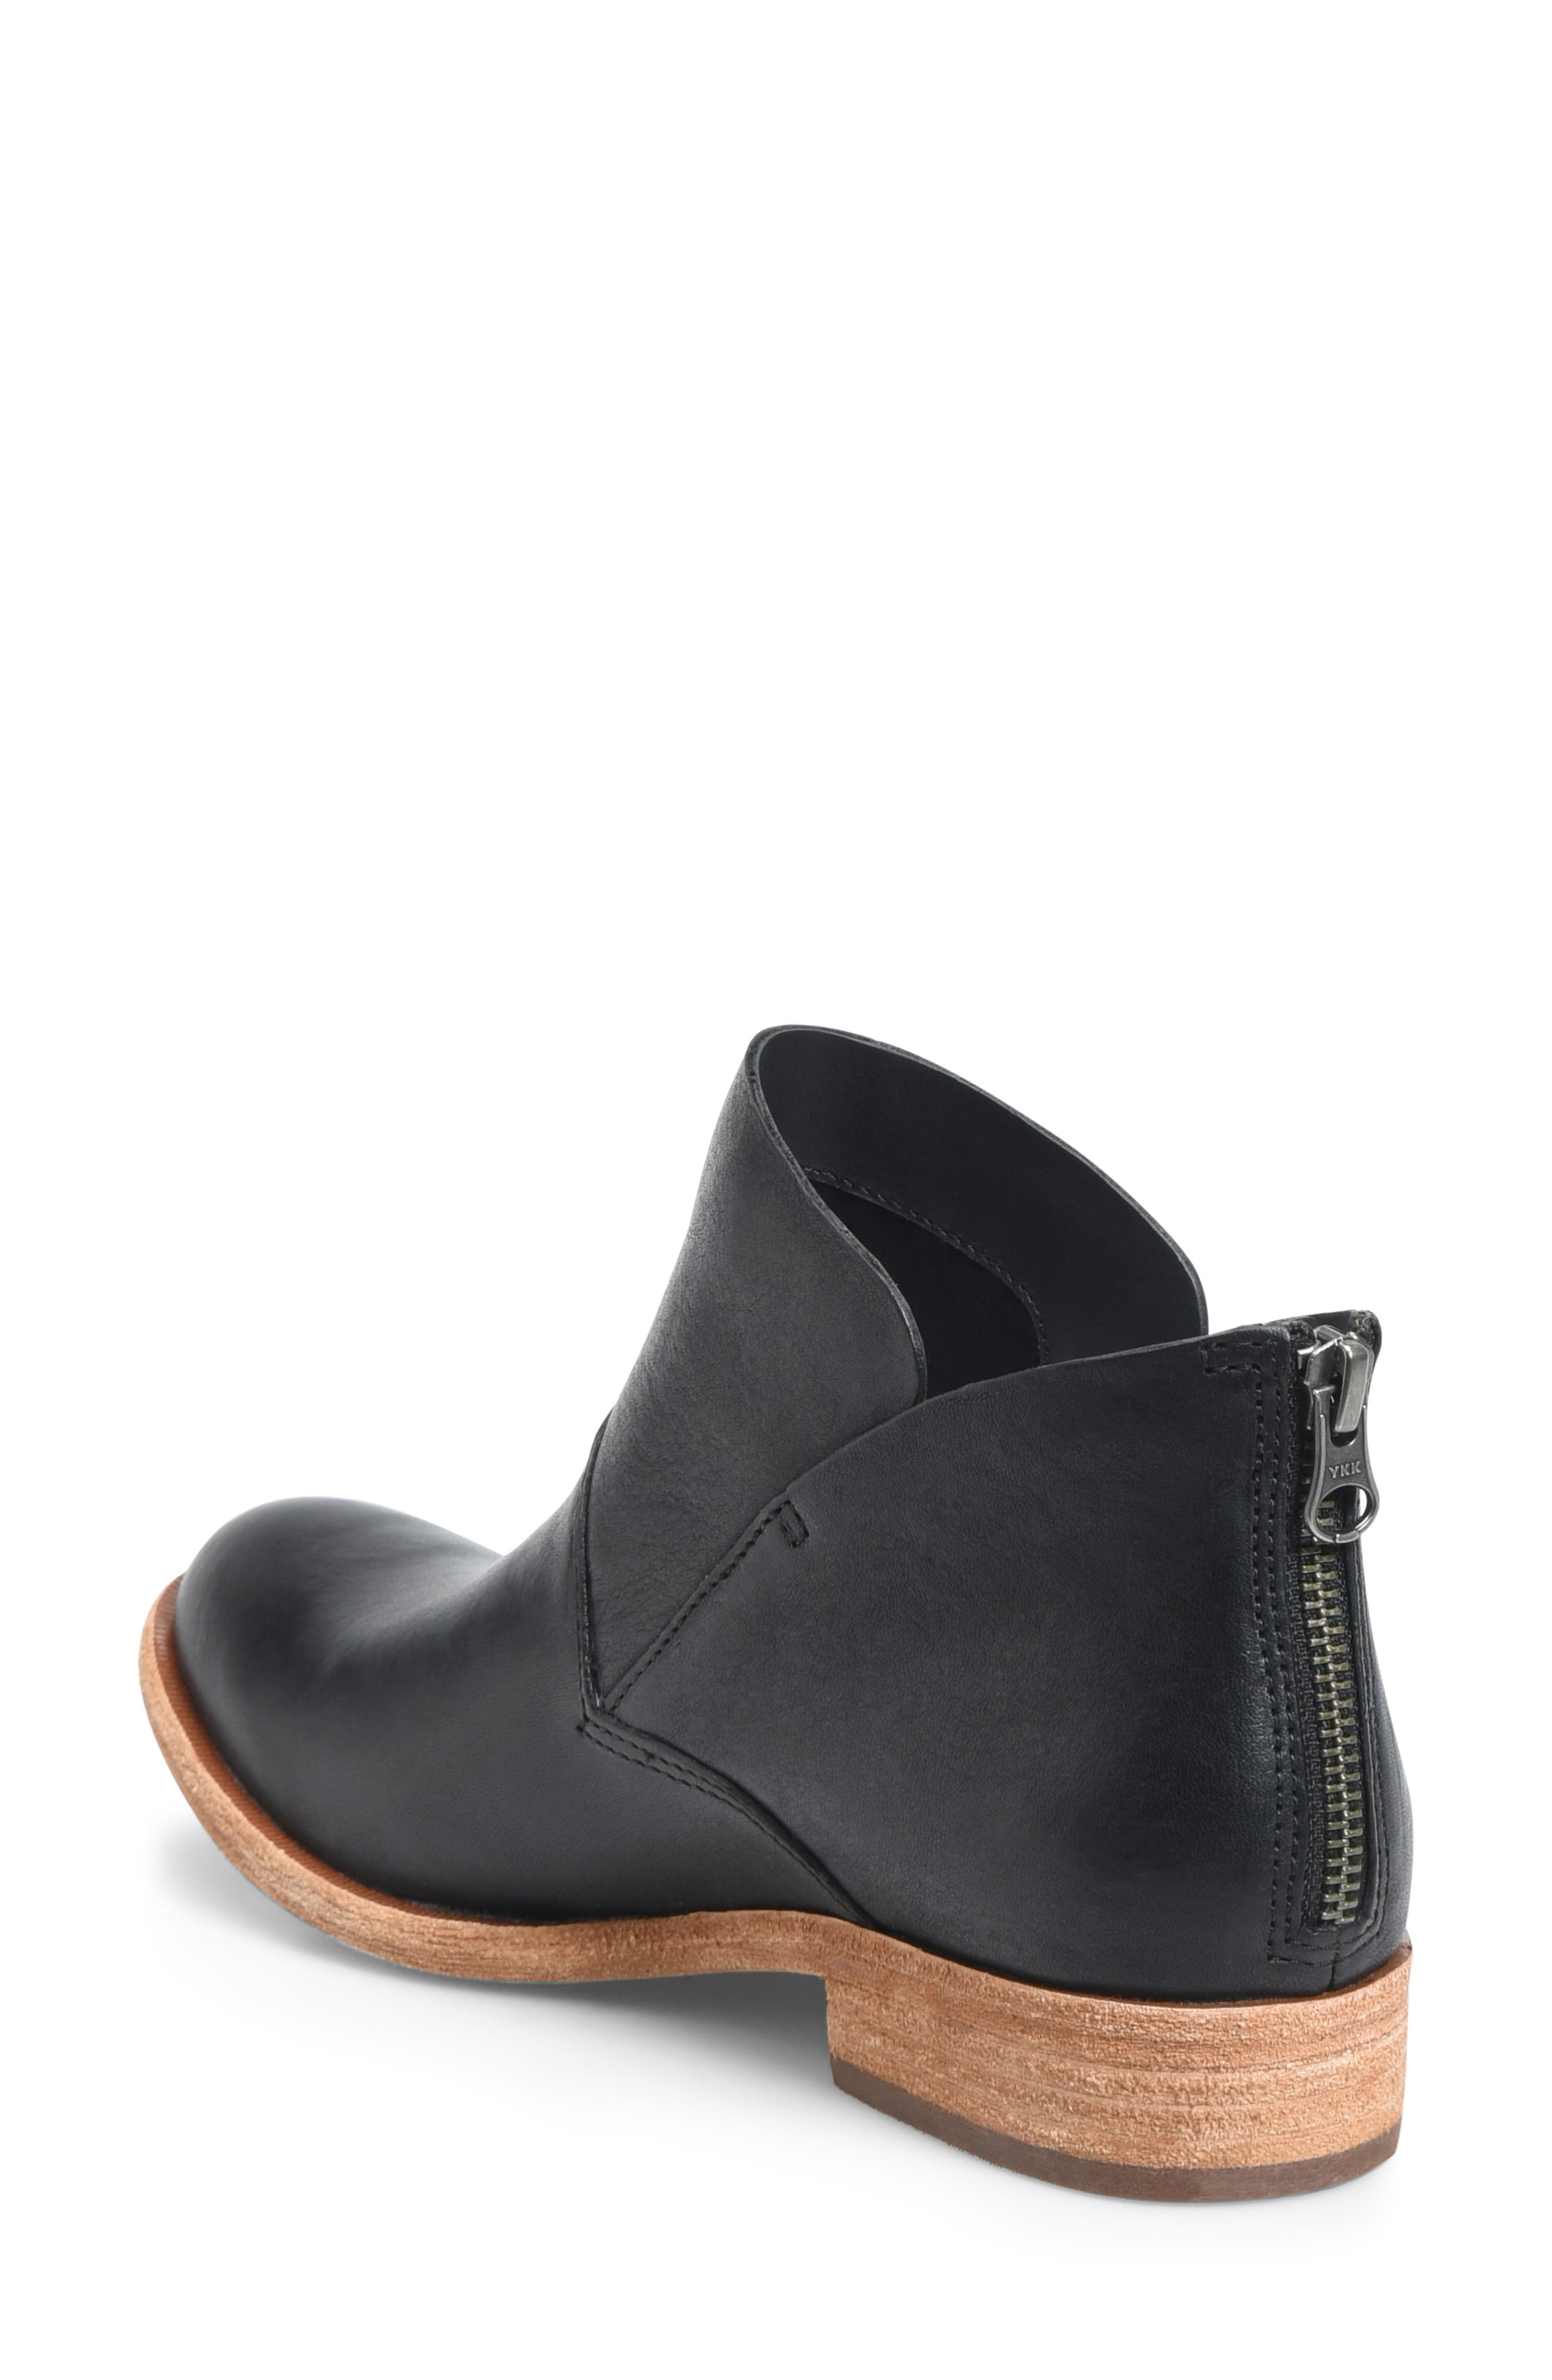 Ryder Ankle Boot,                             Alternate thumbnail 2, color,                             BLACK LEATHER